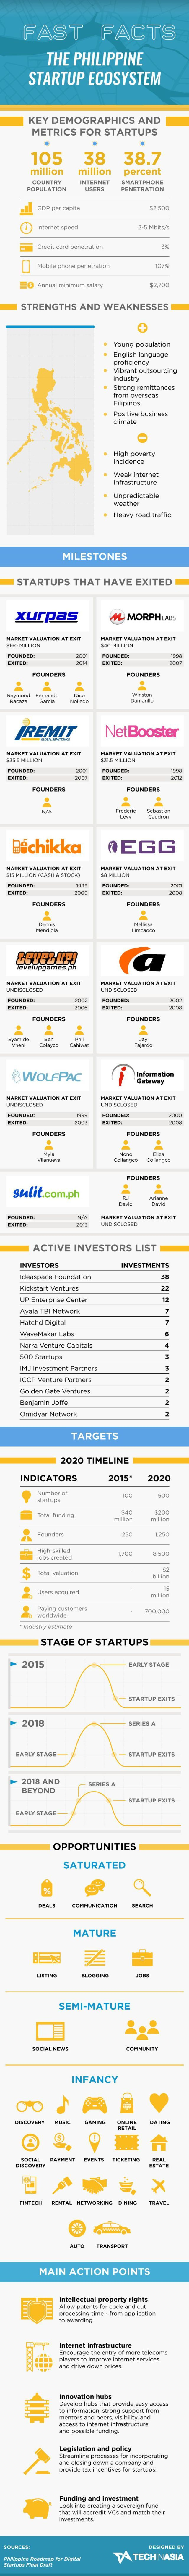 Startup infographic : What you need to know about the Philippine startup scene (INFOGRAPHIC)